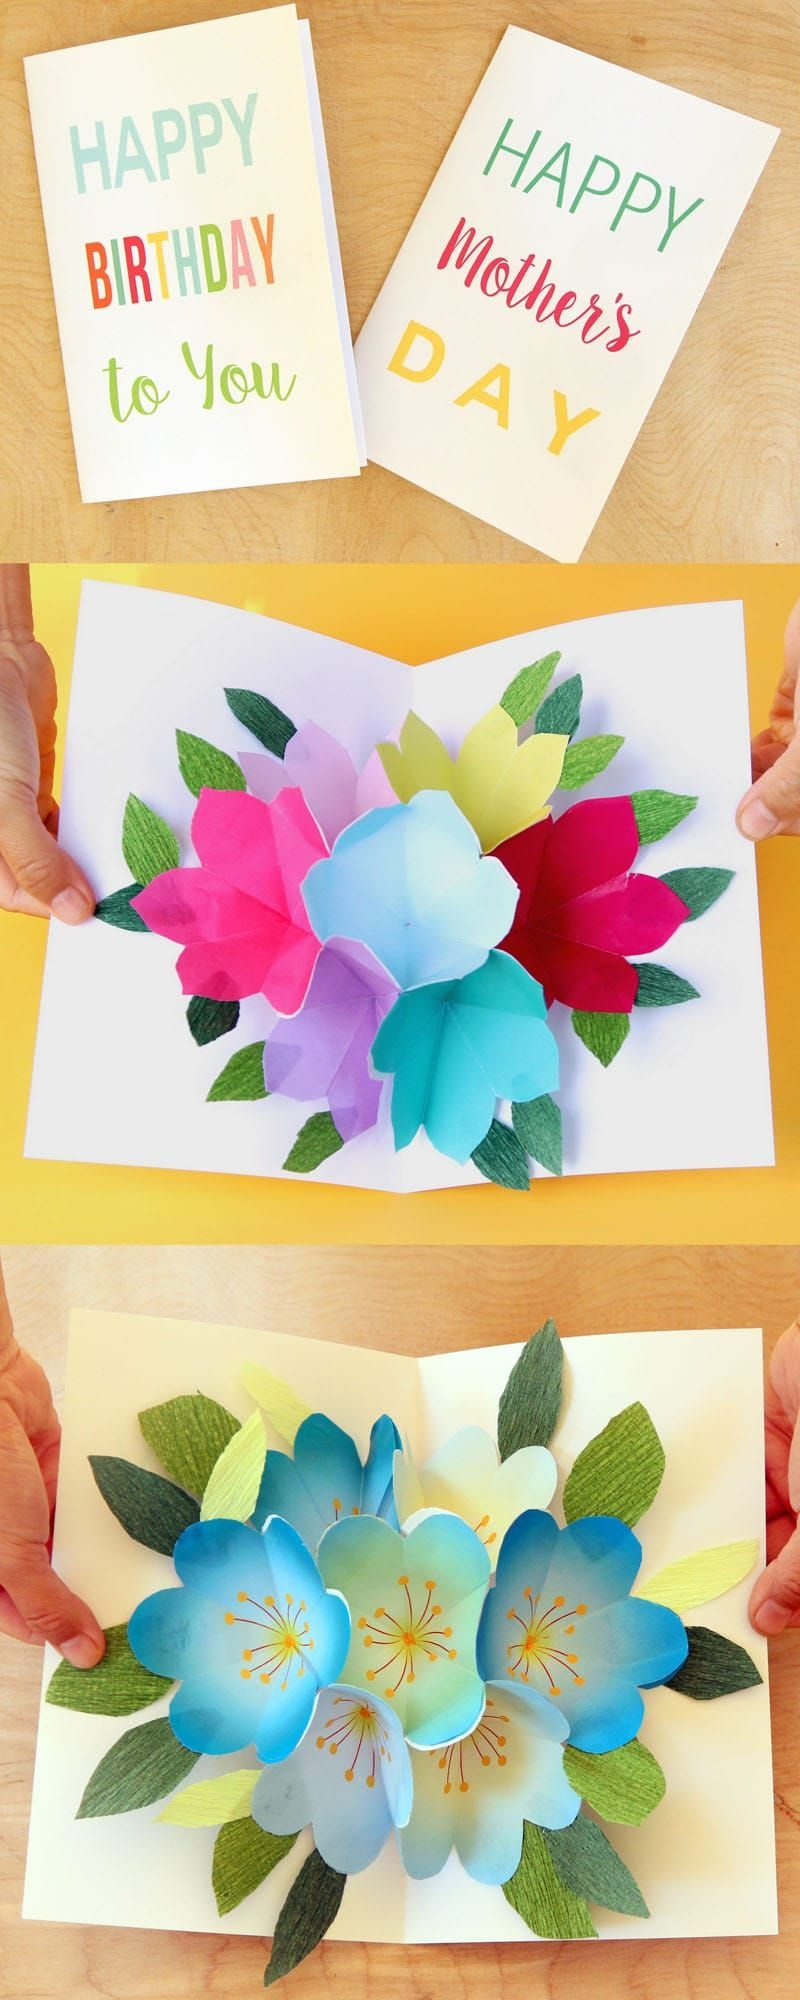 Free Printable Happy Birthday Card With Pop Up Bouquet | Printables - Free Printable Birthday Cards For Mom